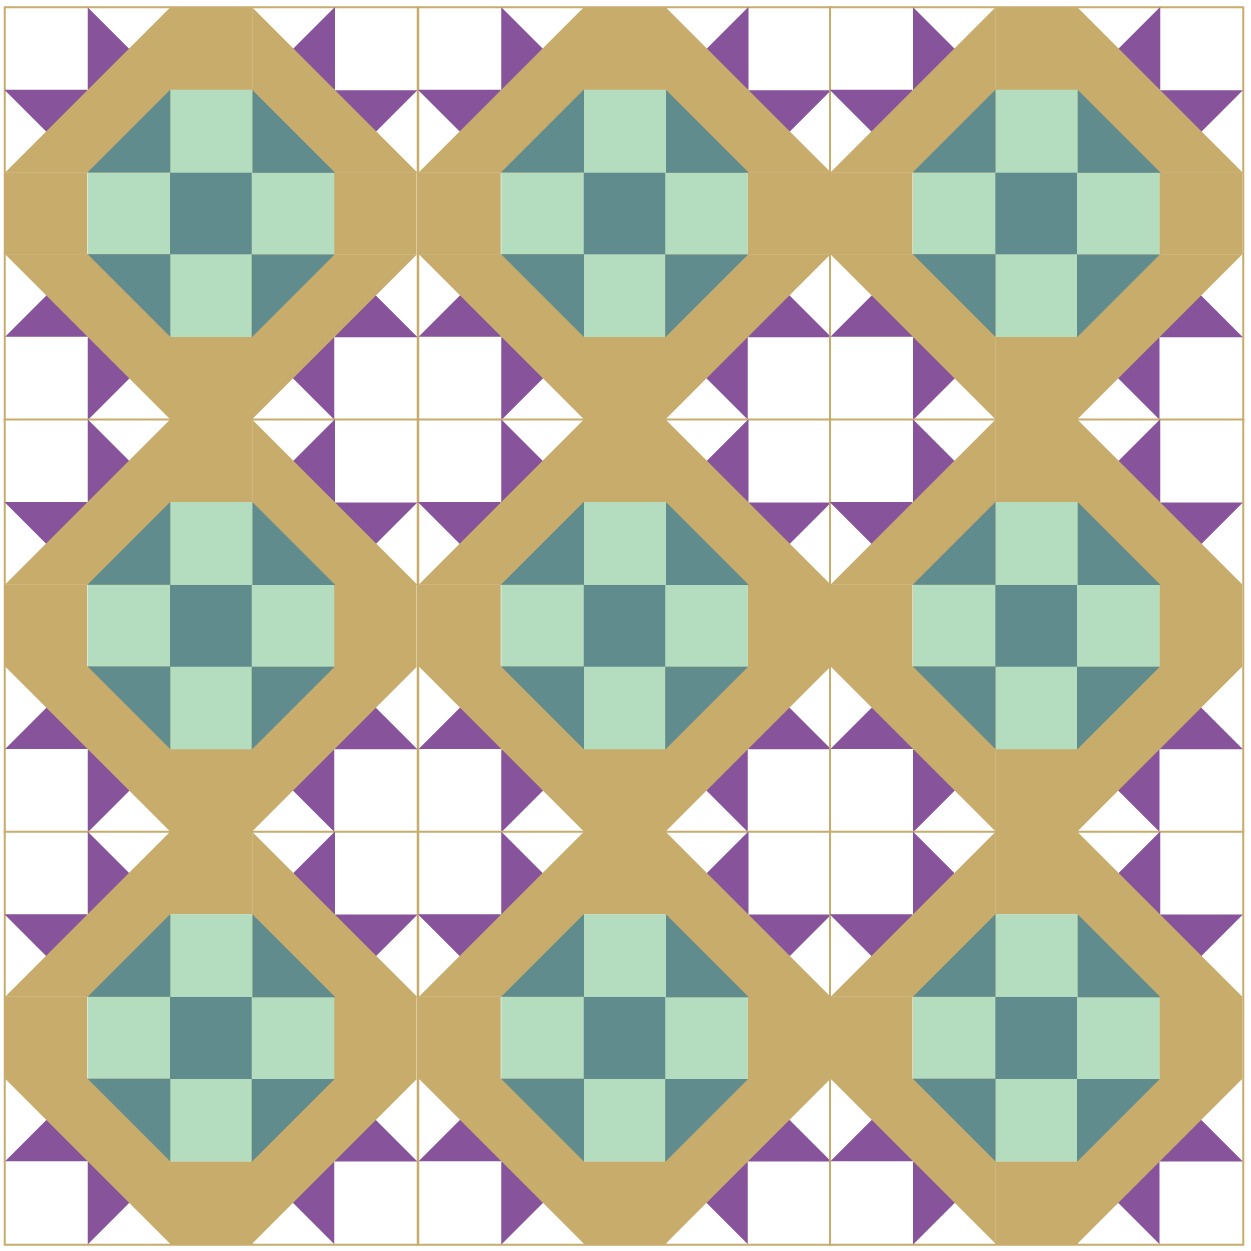 Grouping of David and Goliath Quilt Blocks